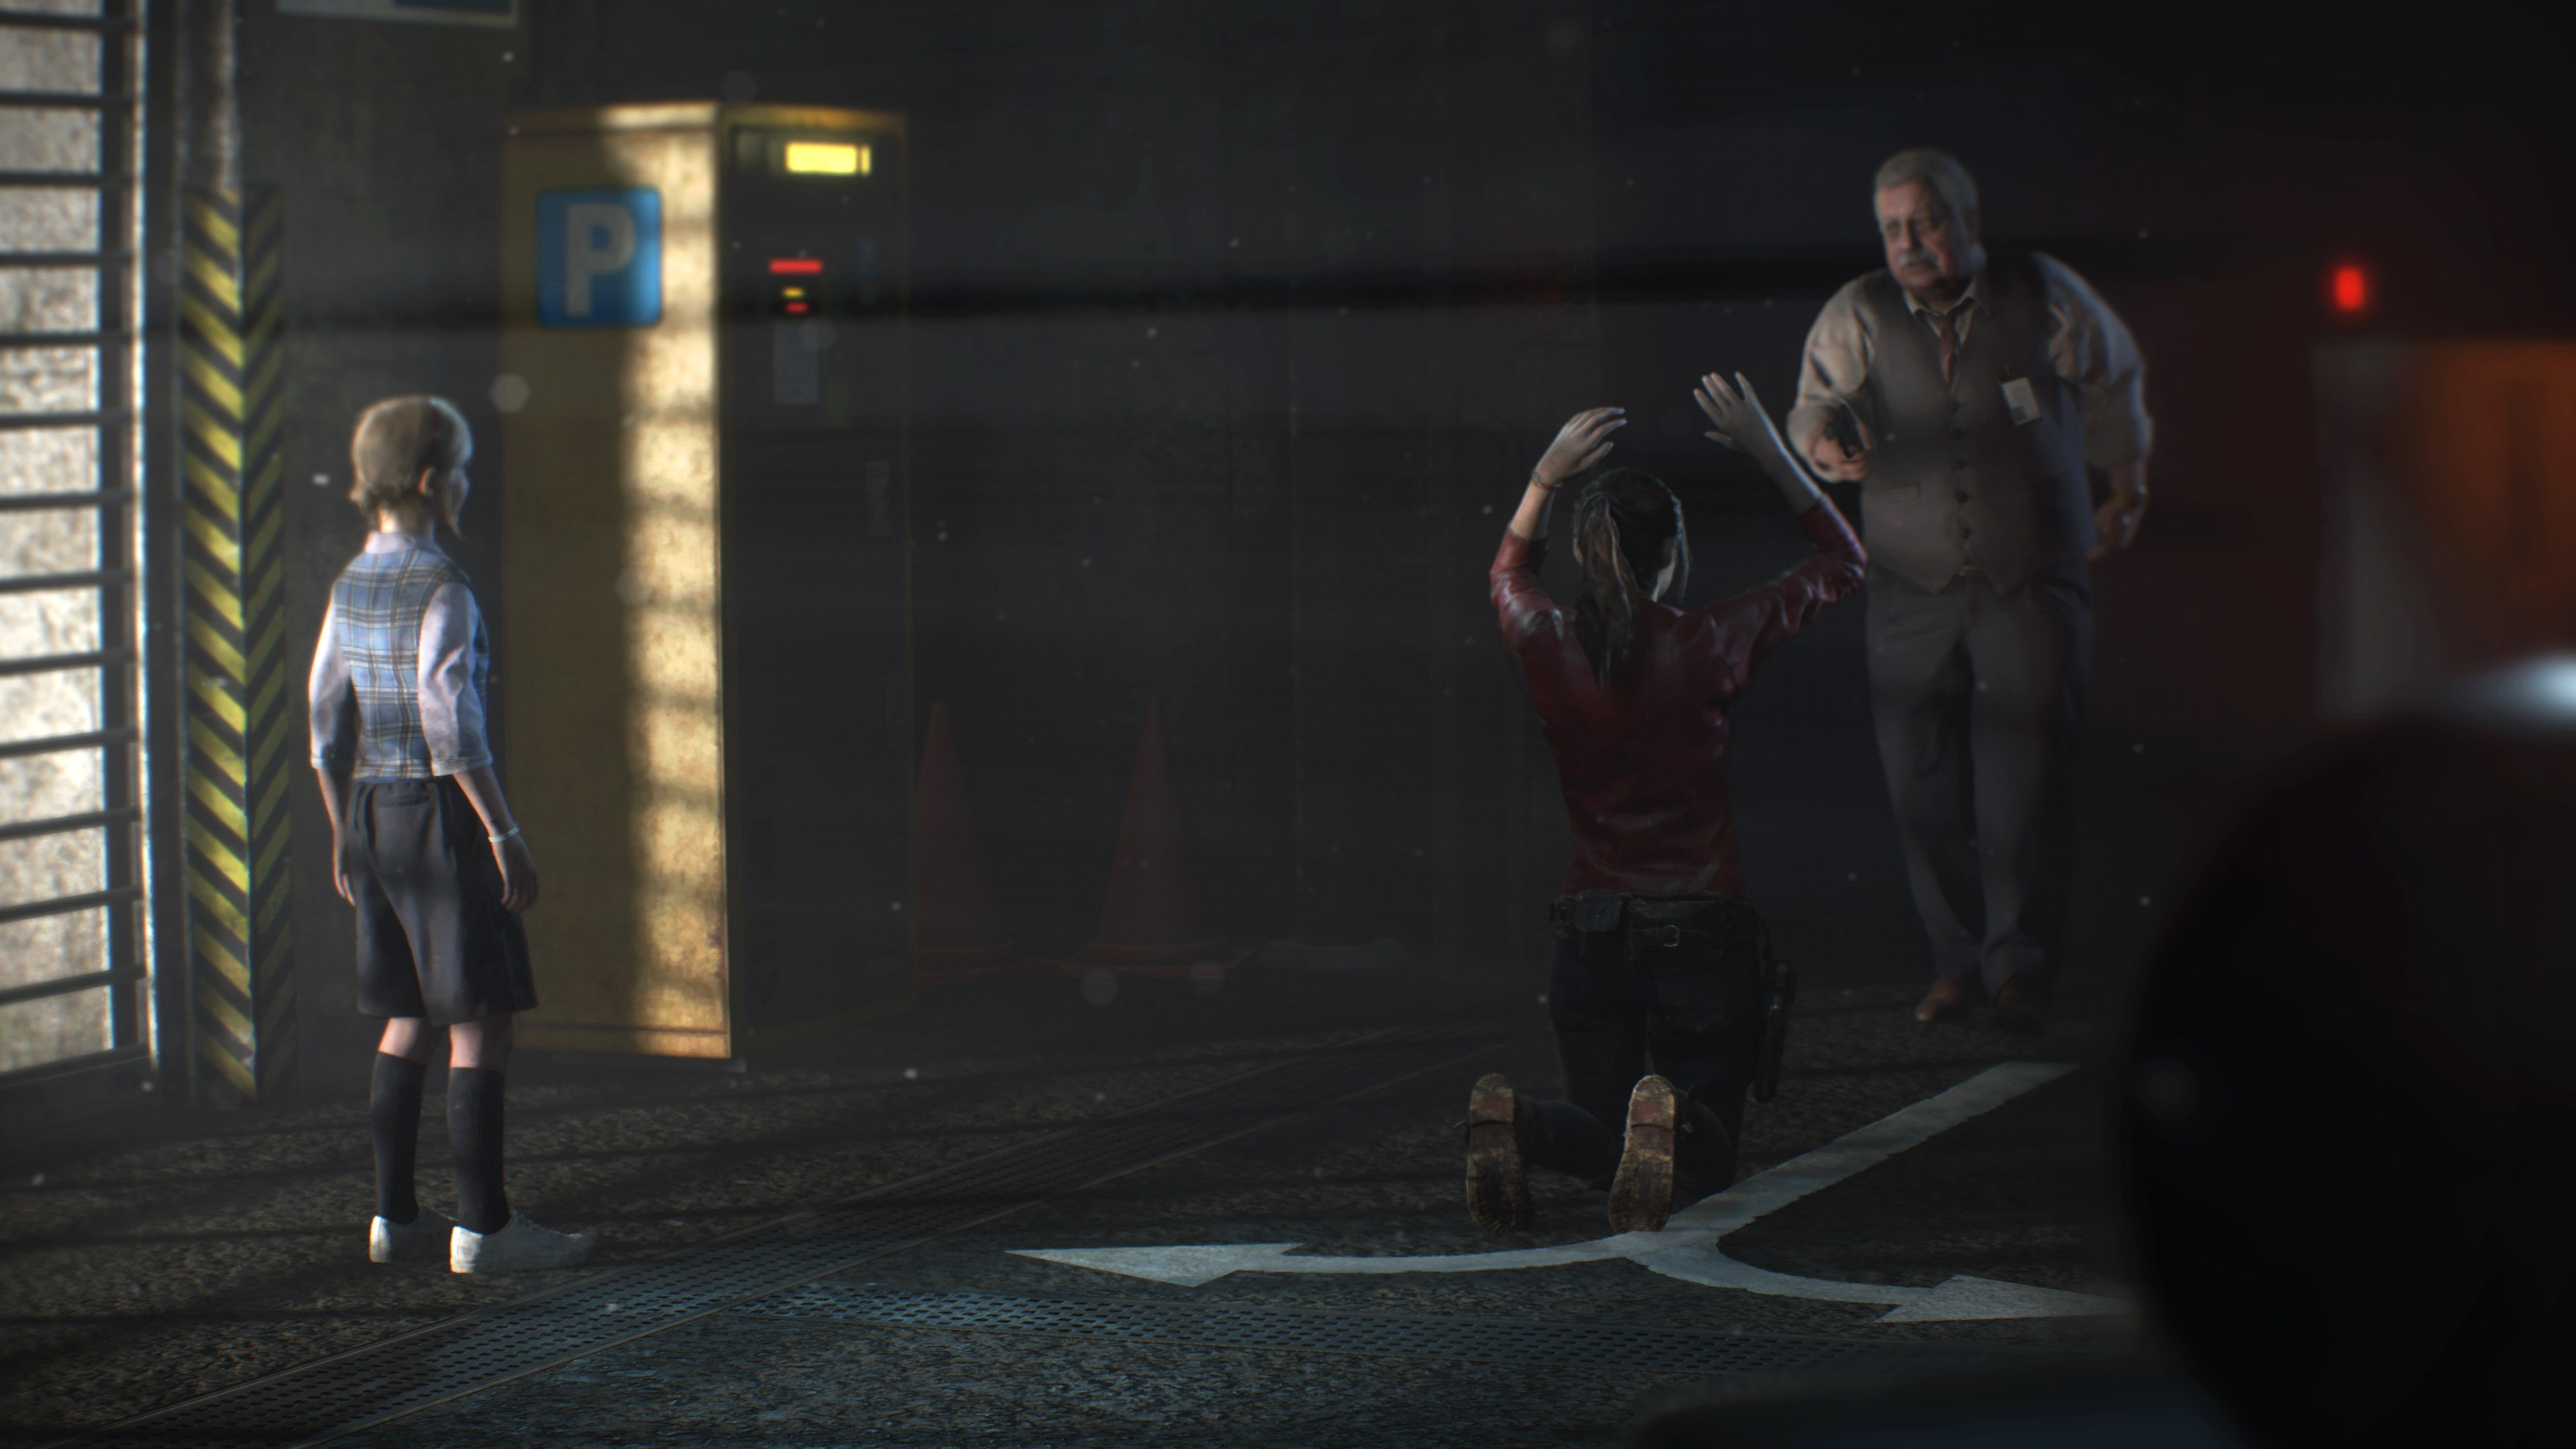 Watch an extended gameplay clip of Resident Evil 2 featuring Claire